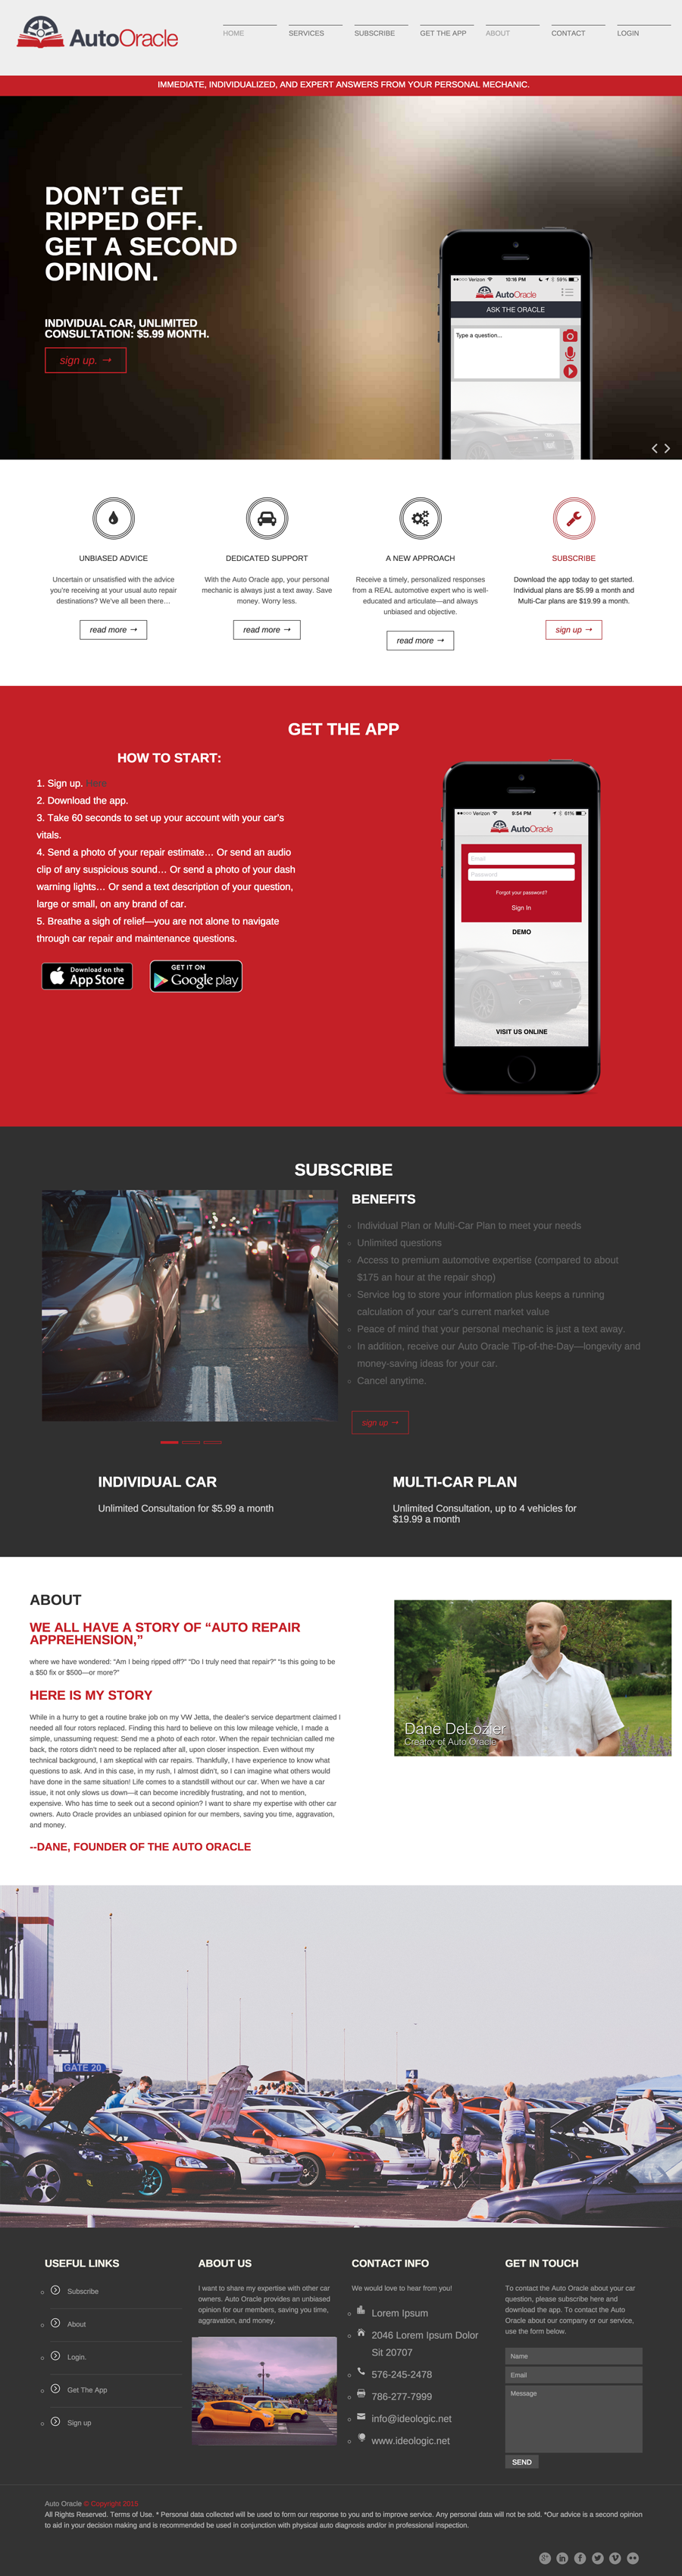 The Auto Oracle Website Full Front Page